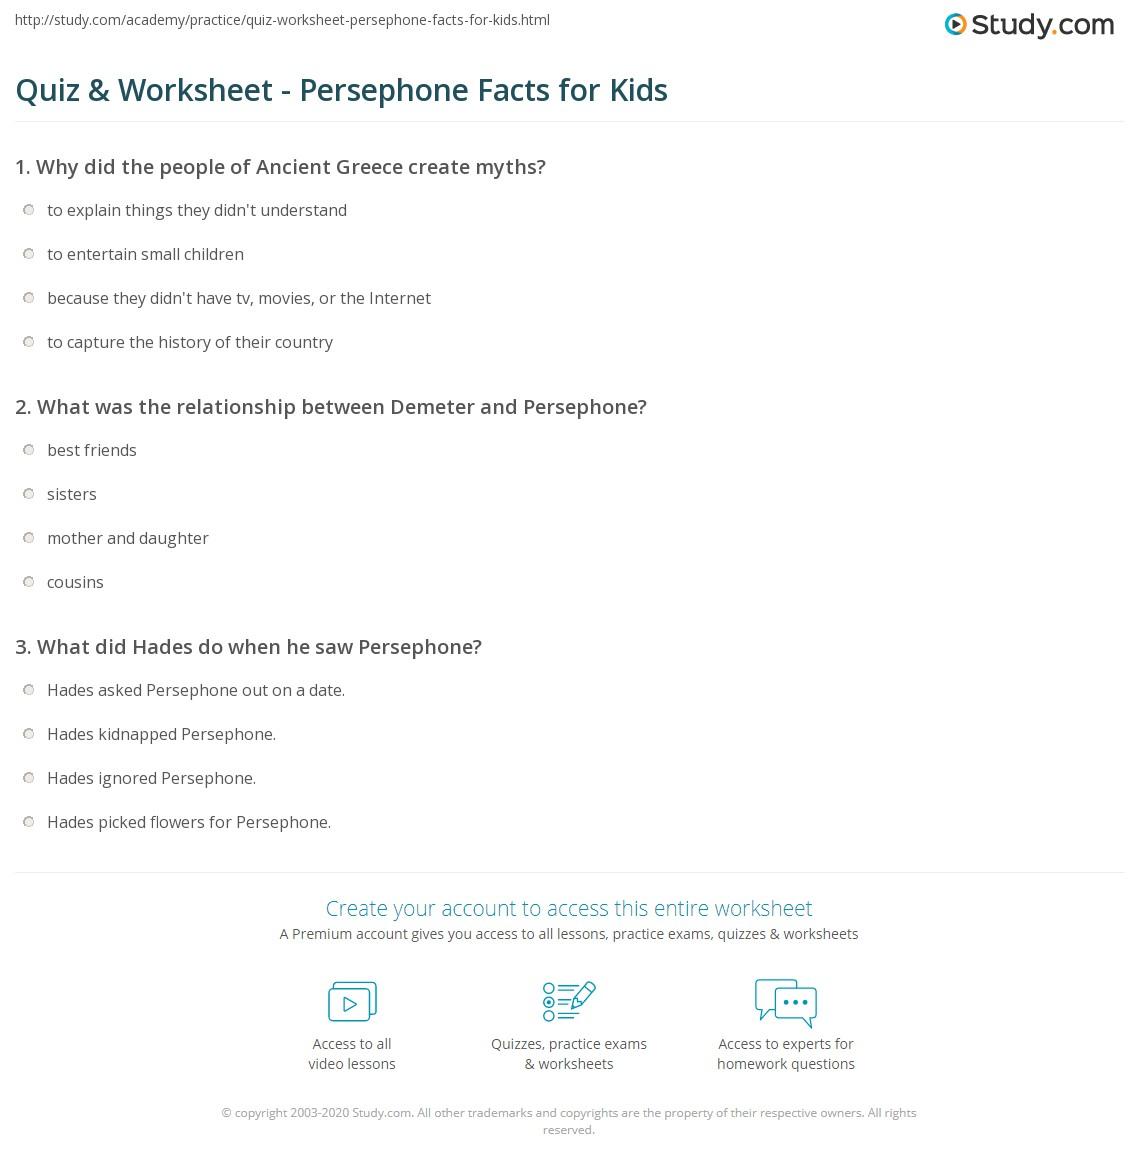 Quiz & Worksheet - Persephone Facts for Kids | Study.com